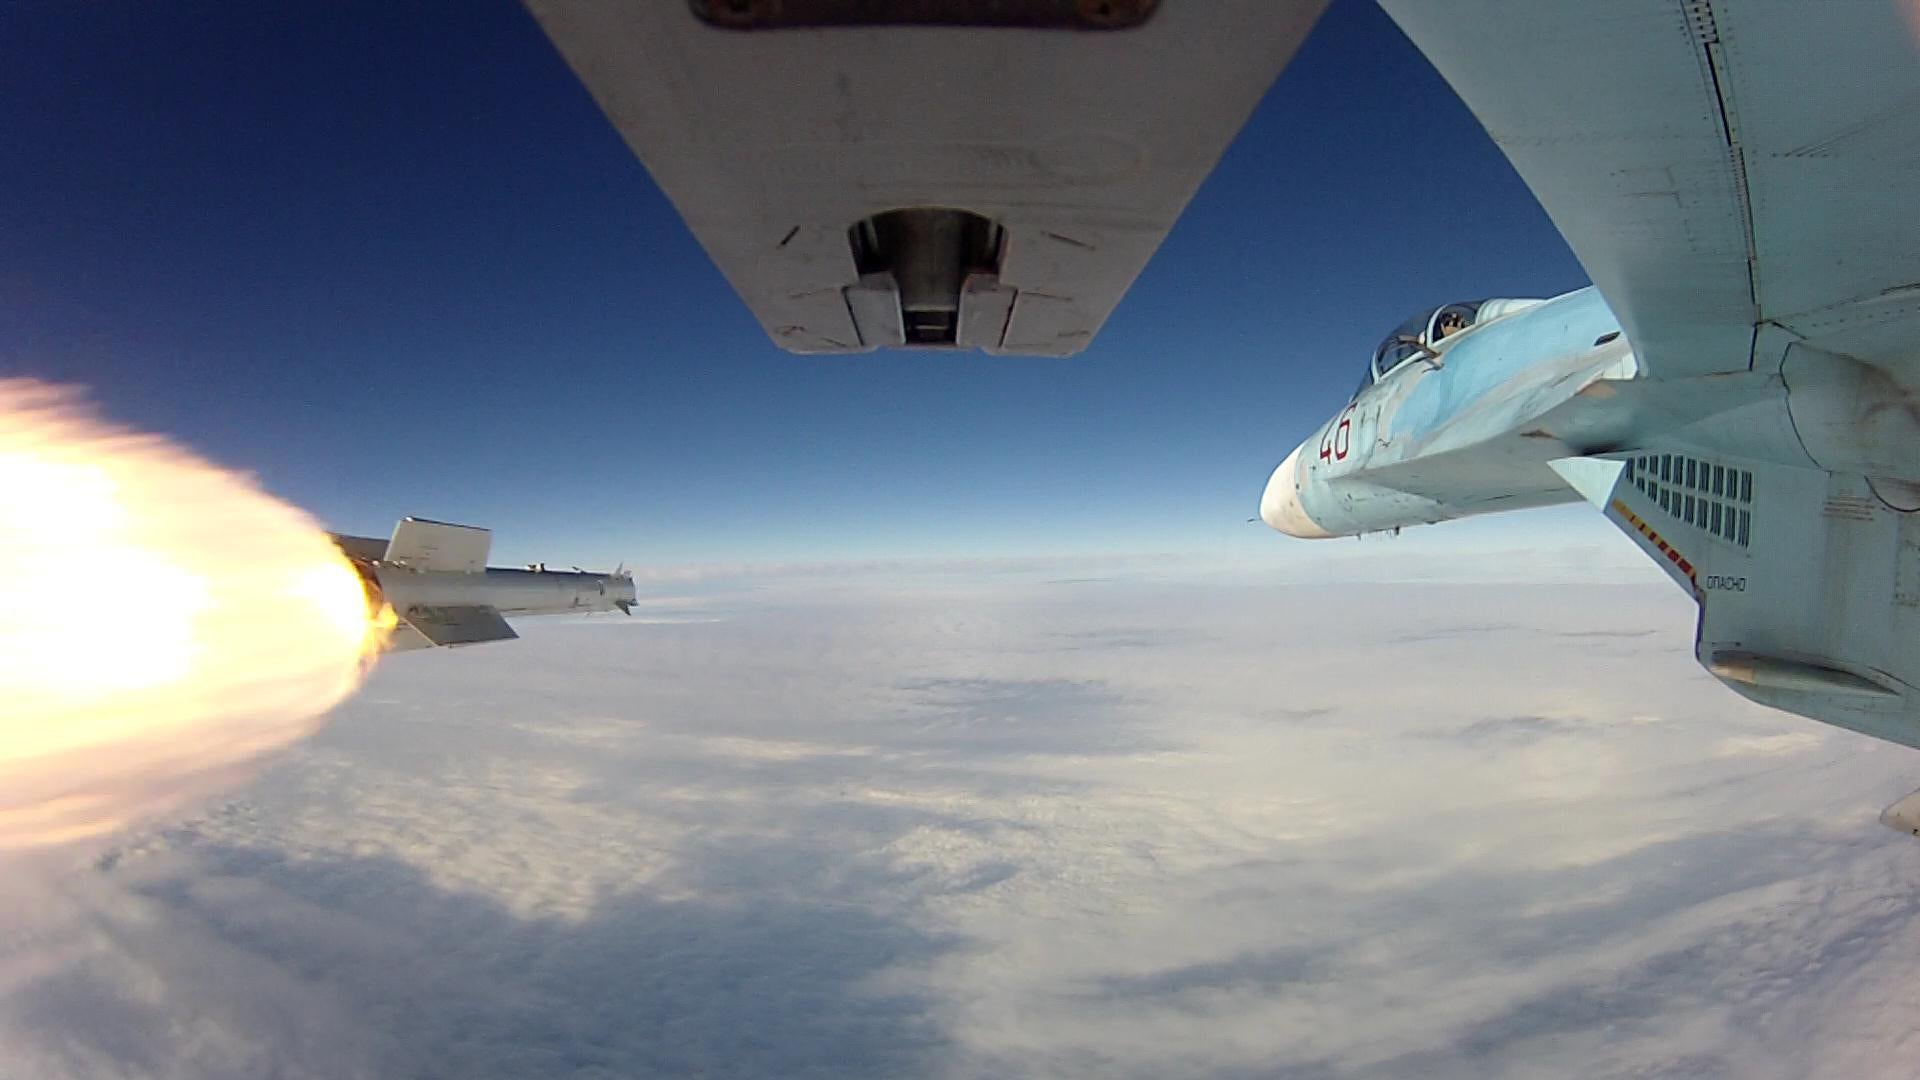 Formidable photo of a missile launch from a Russian jet fighter's wing